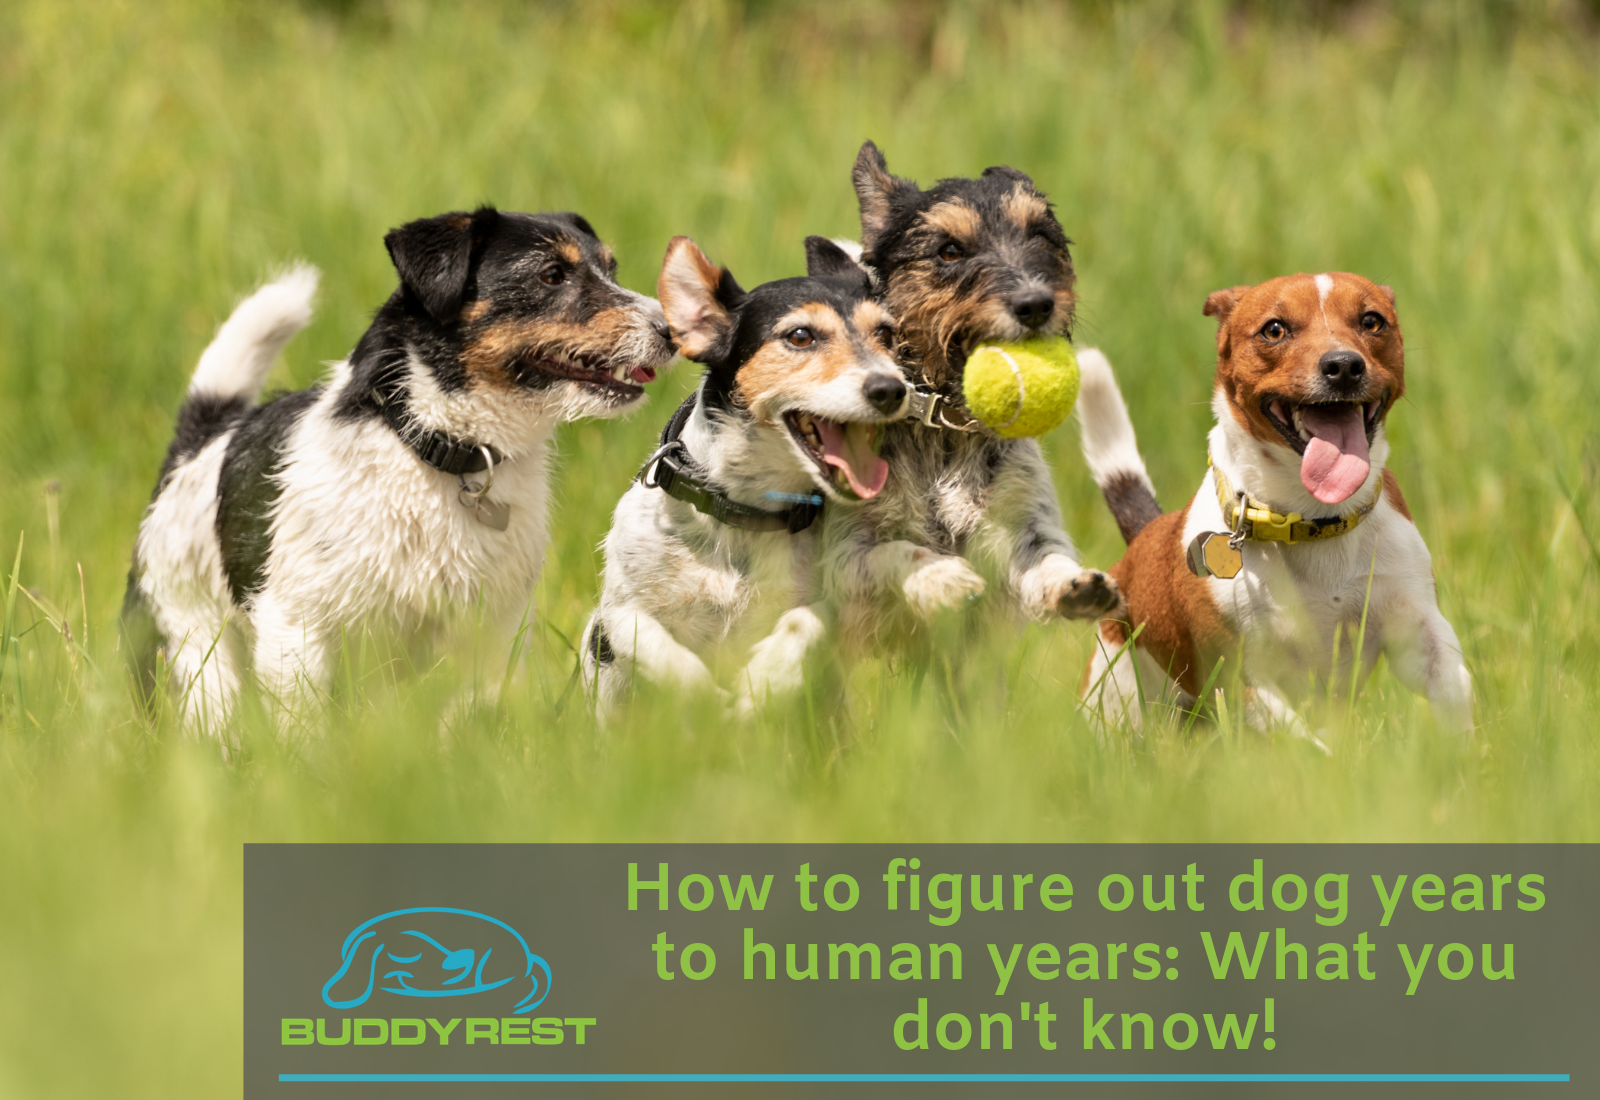 How to figure out dog years to human years: What you don't know!